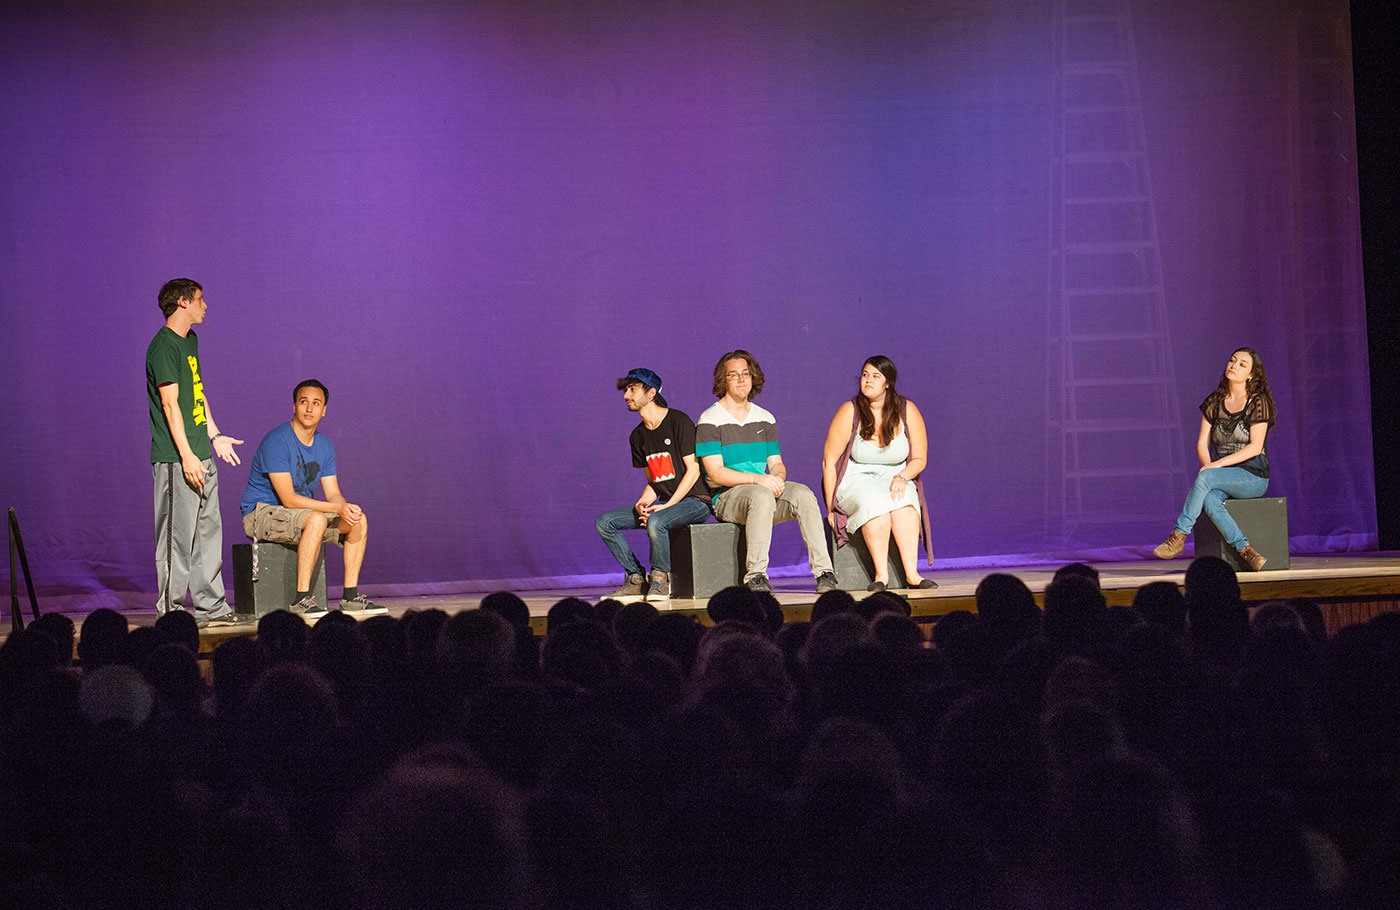 Six students perform on a stage with a purple back drop about sexual wellness issues to a full audience.